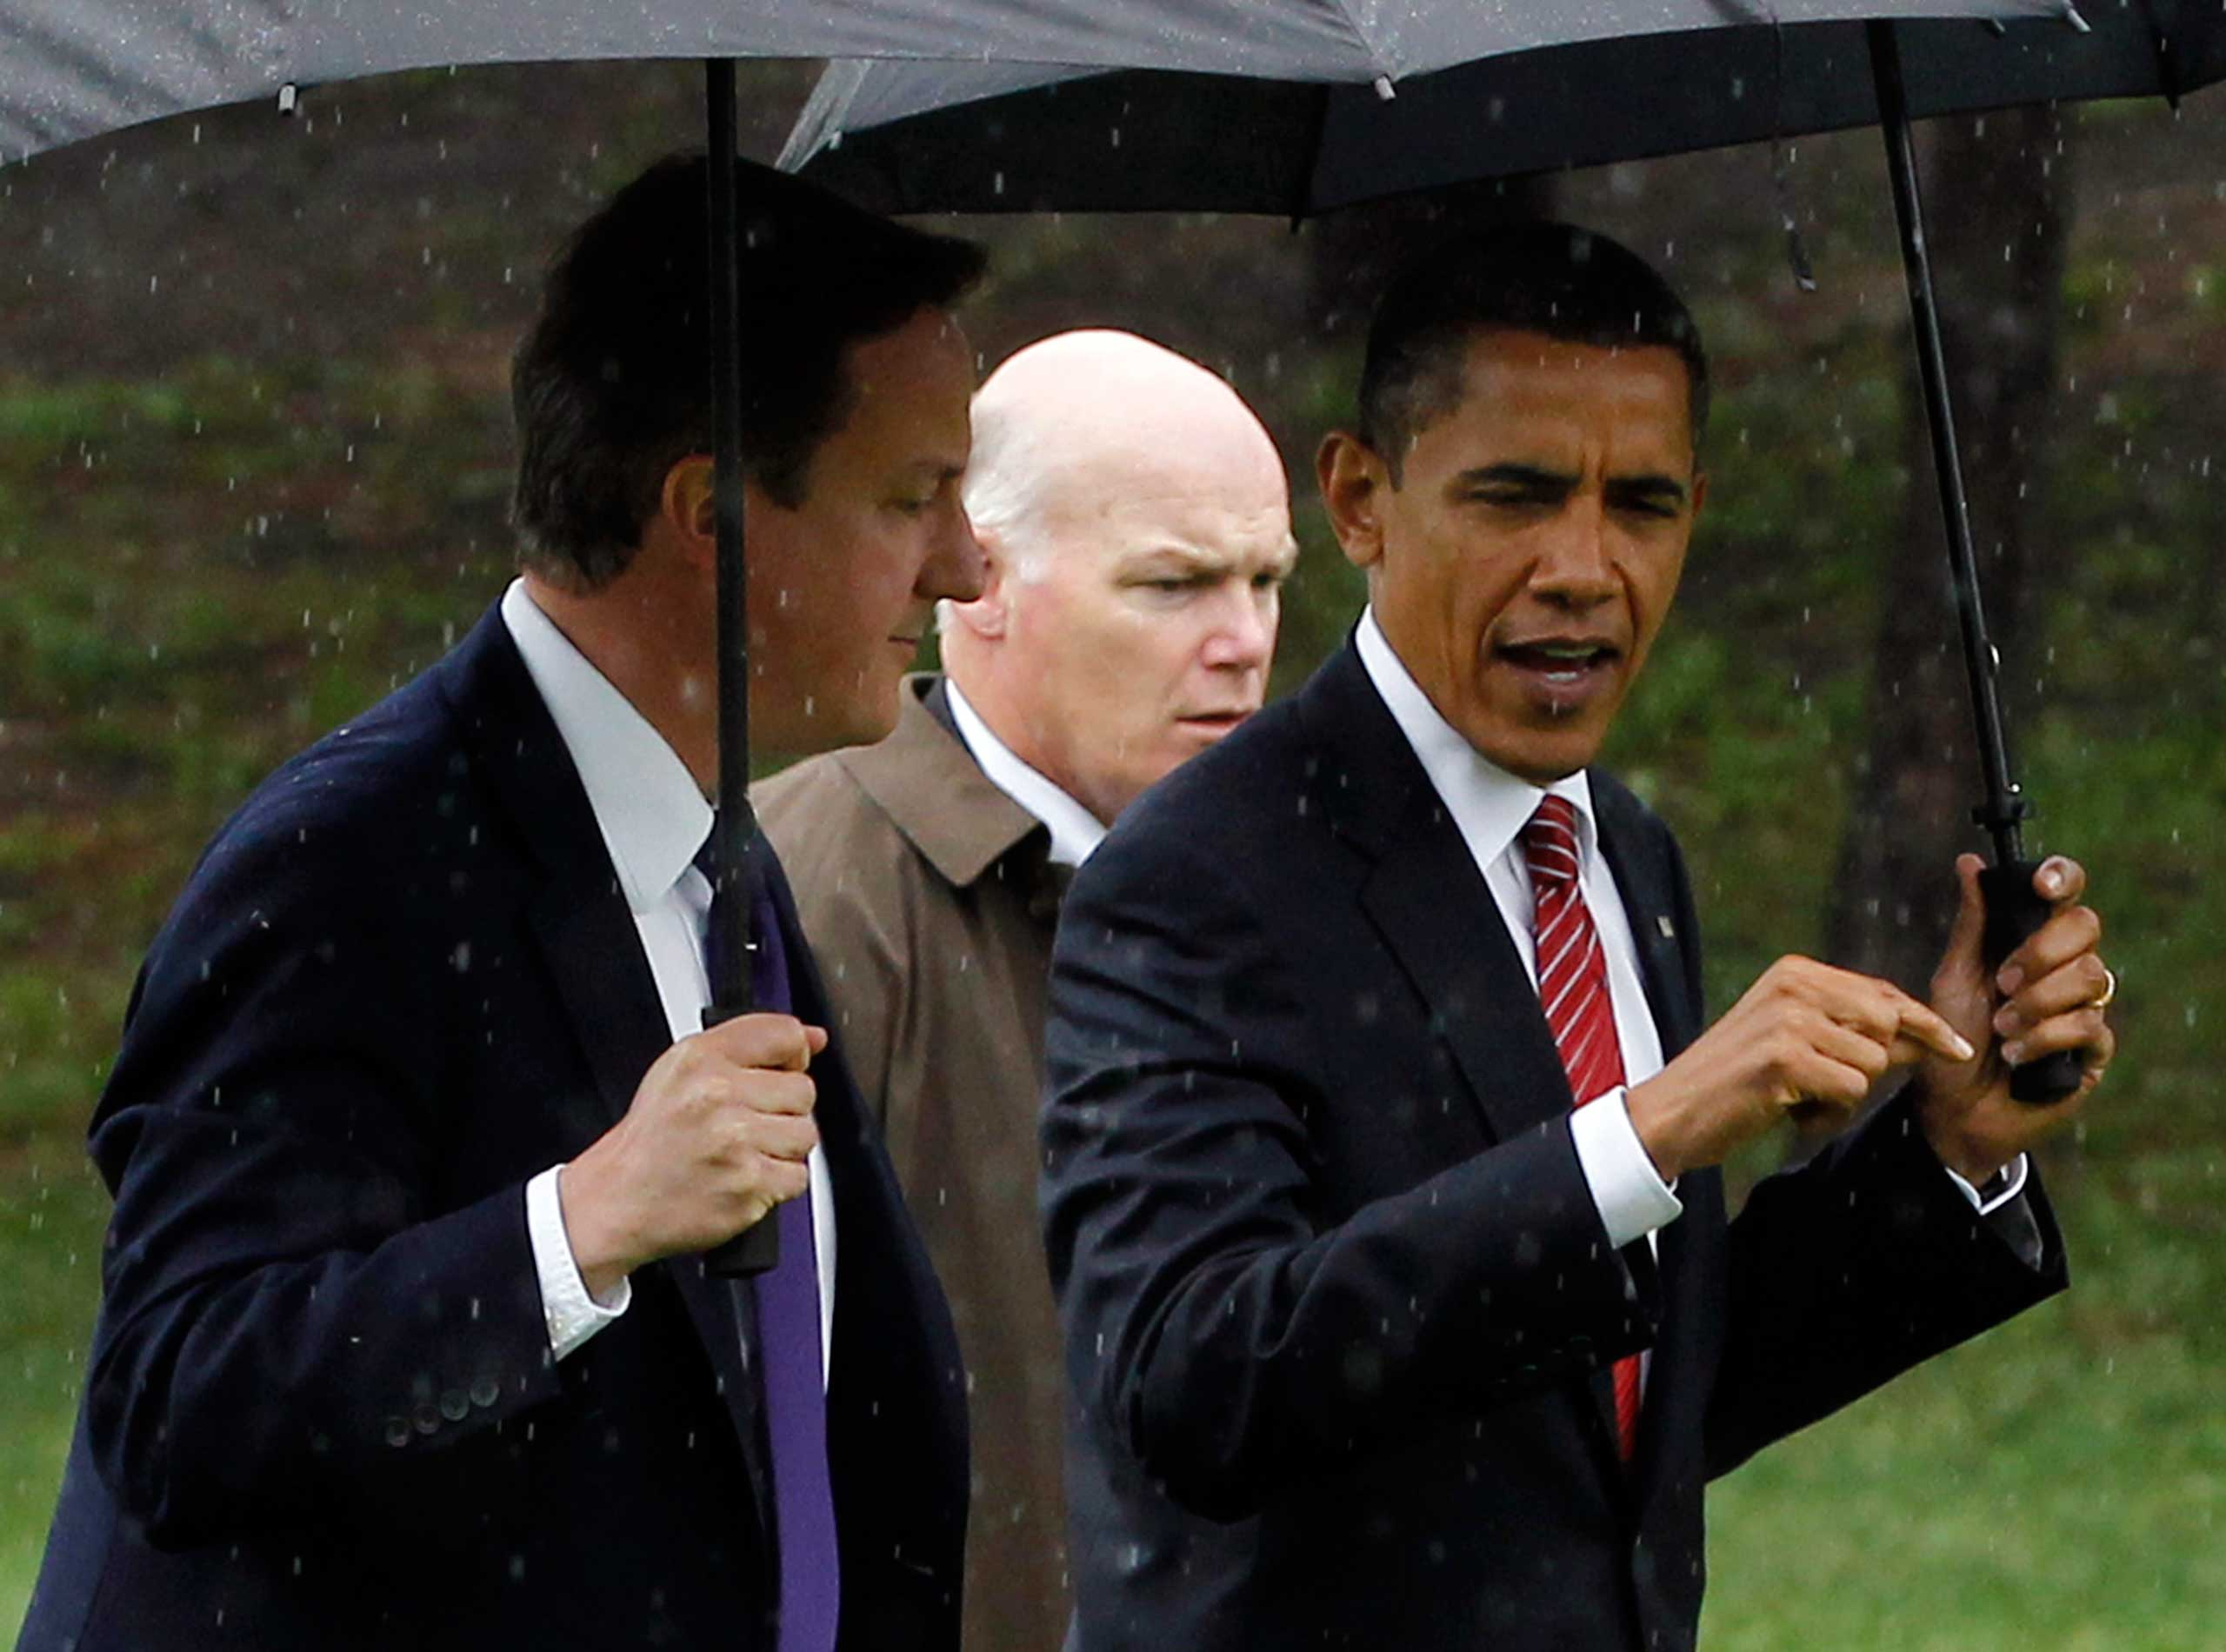 Clancy braves the rain as umbrella-carrying President Barack Obama and British Prime Minister David Cameron walk from Marine One in Toronto, after their flight from the G8 Summit to the G20 Summit on June 26, 2010.